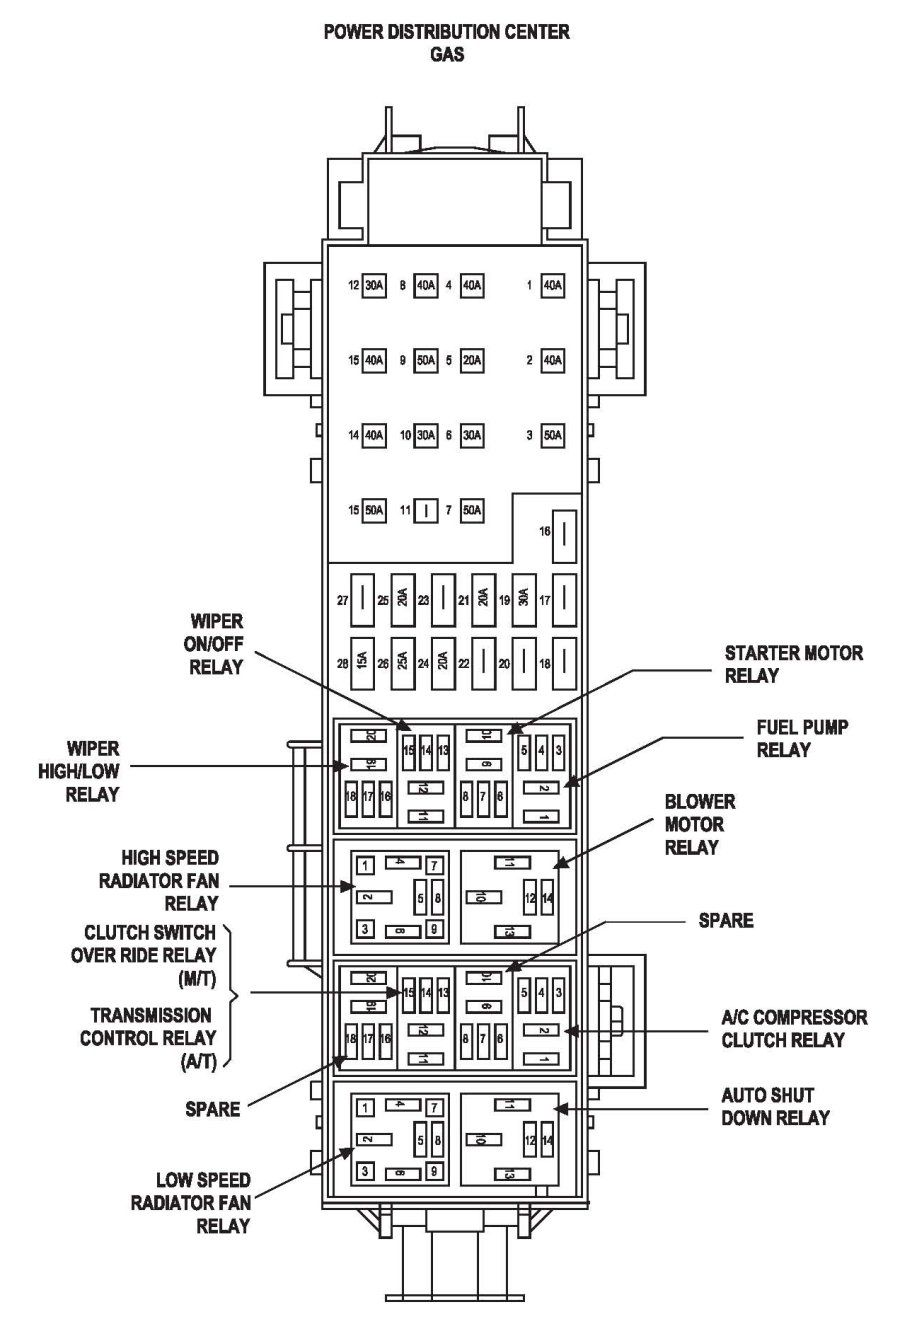 b3536c3739783eb19f827744cc42c3c4 jeep liberty fuse box diagram image details jeep liberty 2000 jeep wrangler fuse box diagram at mifinder.co